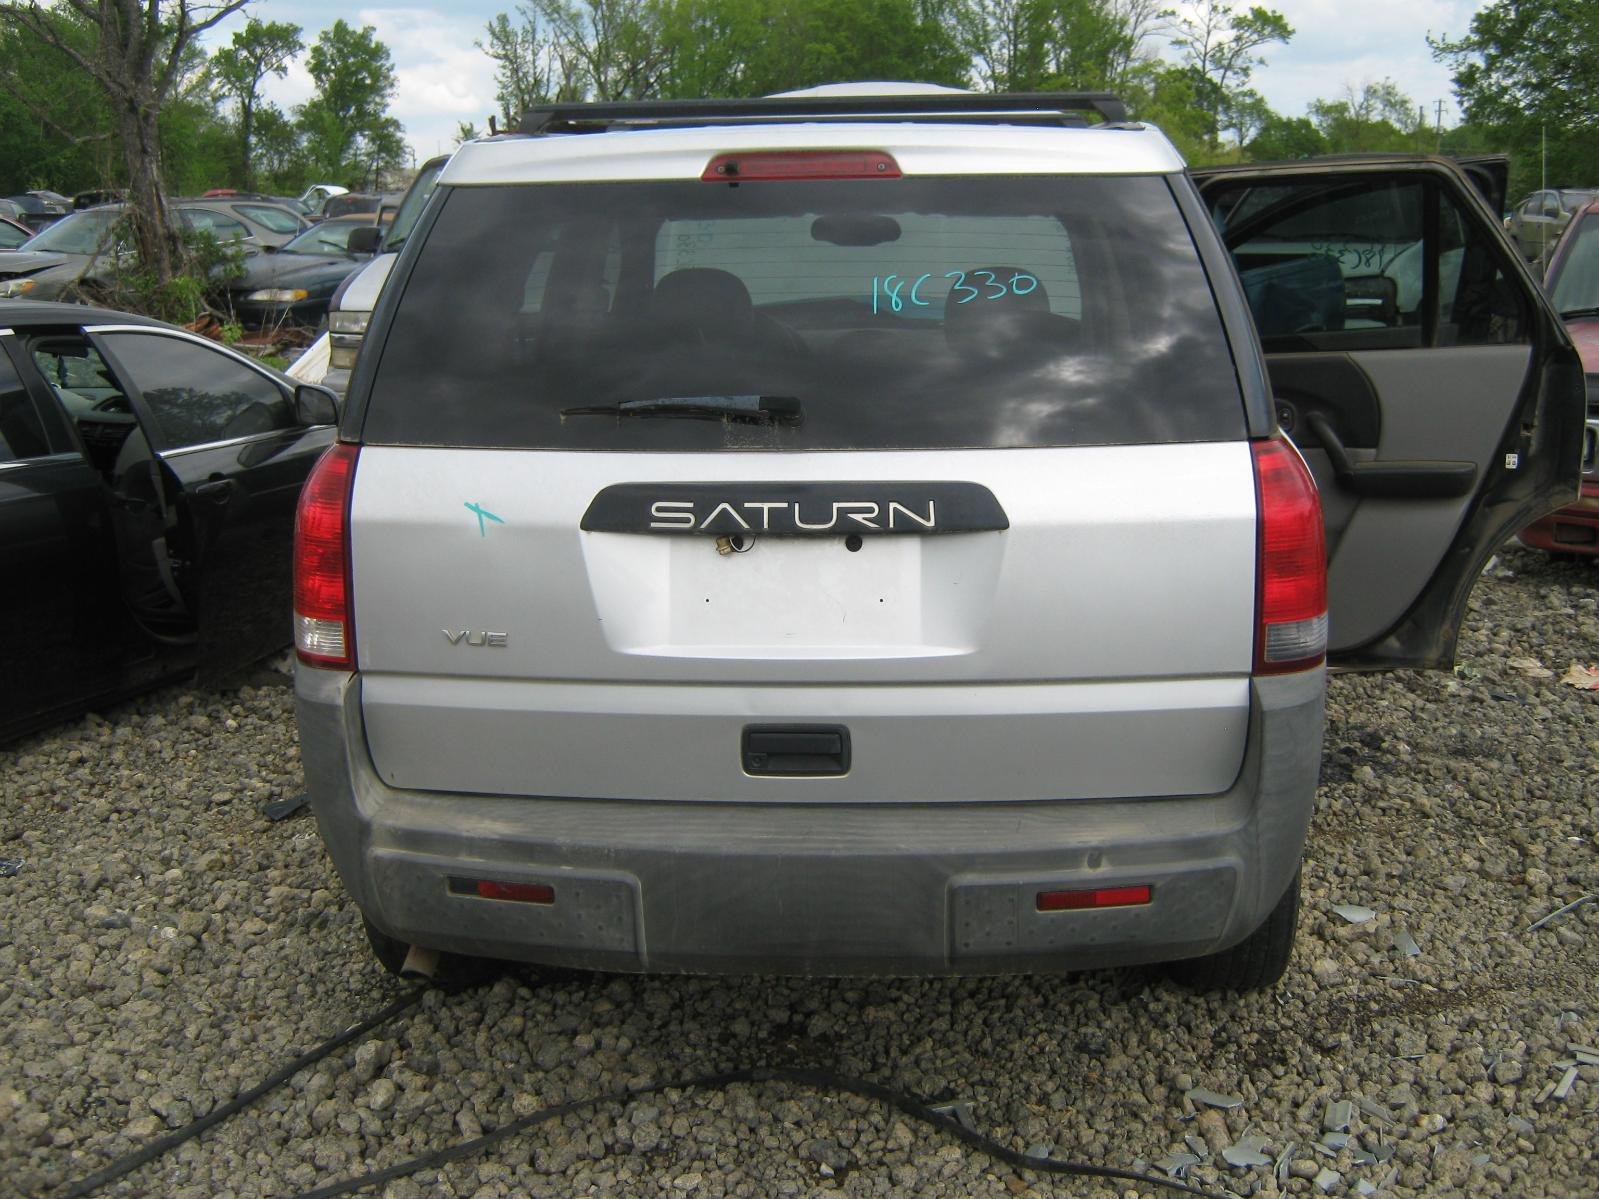 Saturn Vue Front End Assembly Used Auto Parts Transmission Swap F402a1f6 2995 46b4 Adf7 9d43b8a95aff